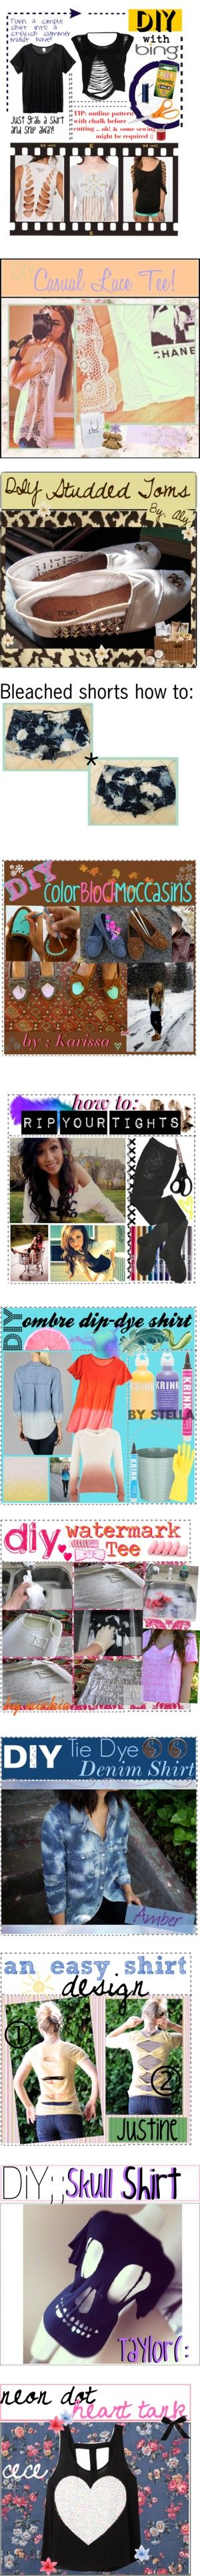 """""""Clothing DIYs (^U^)(-.-)"""" by sage2chip ❤ liked on Polyvore"""